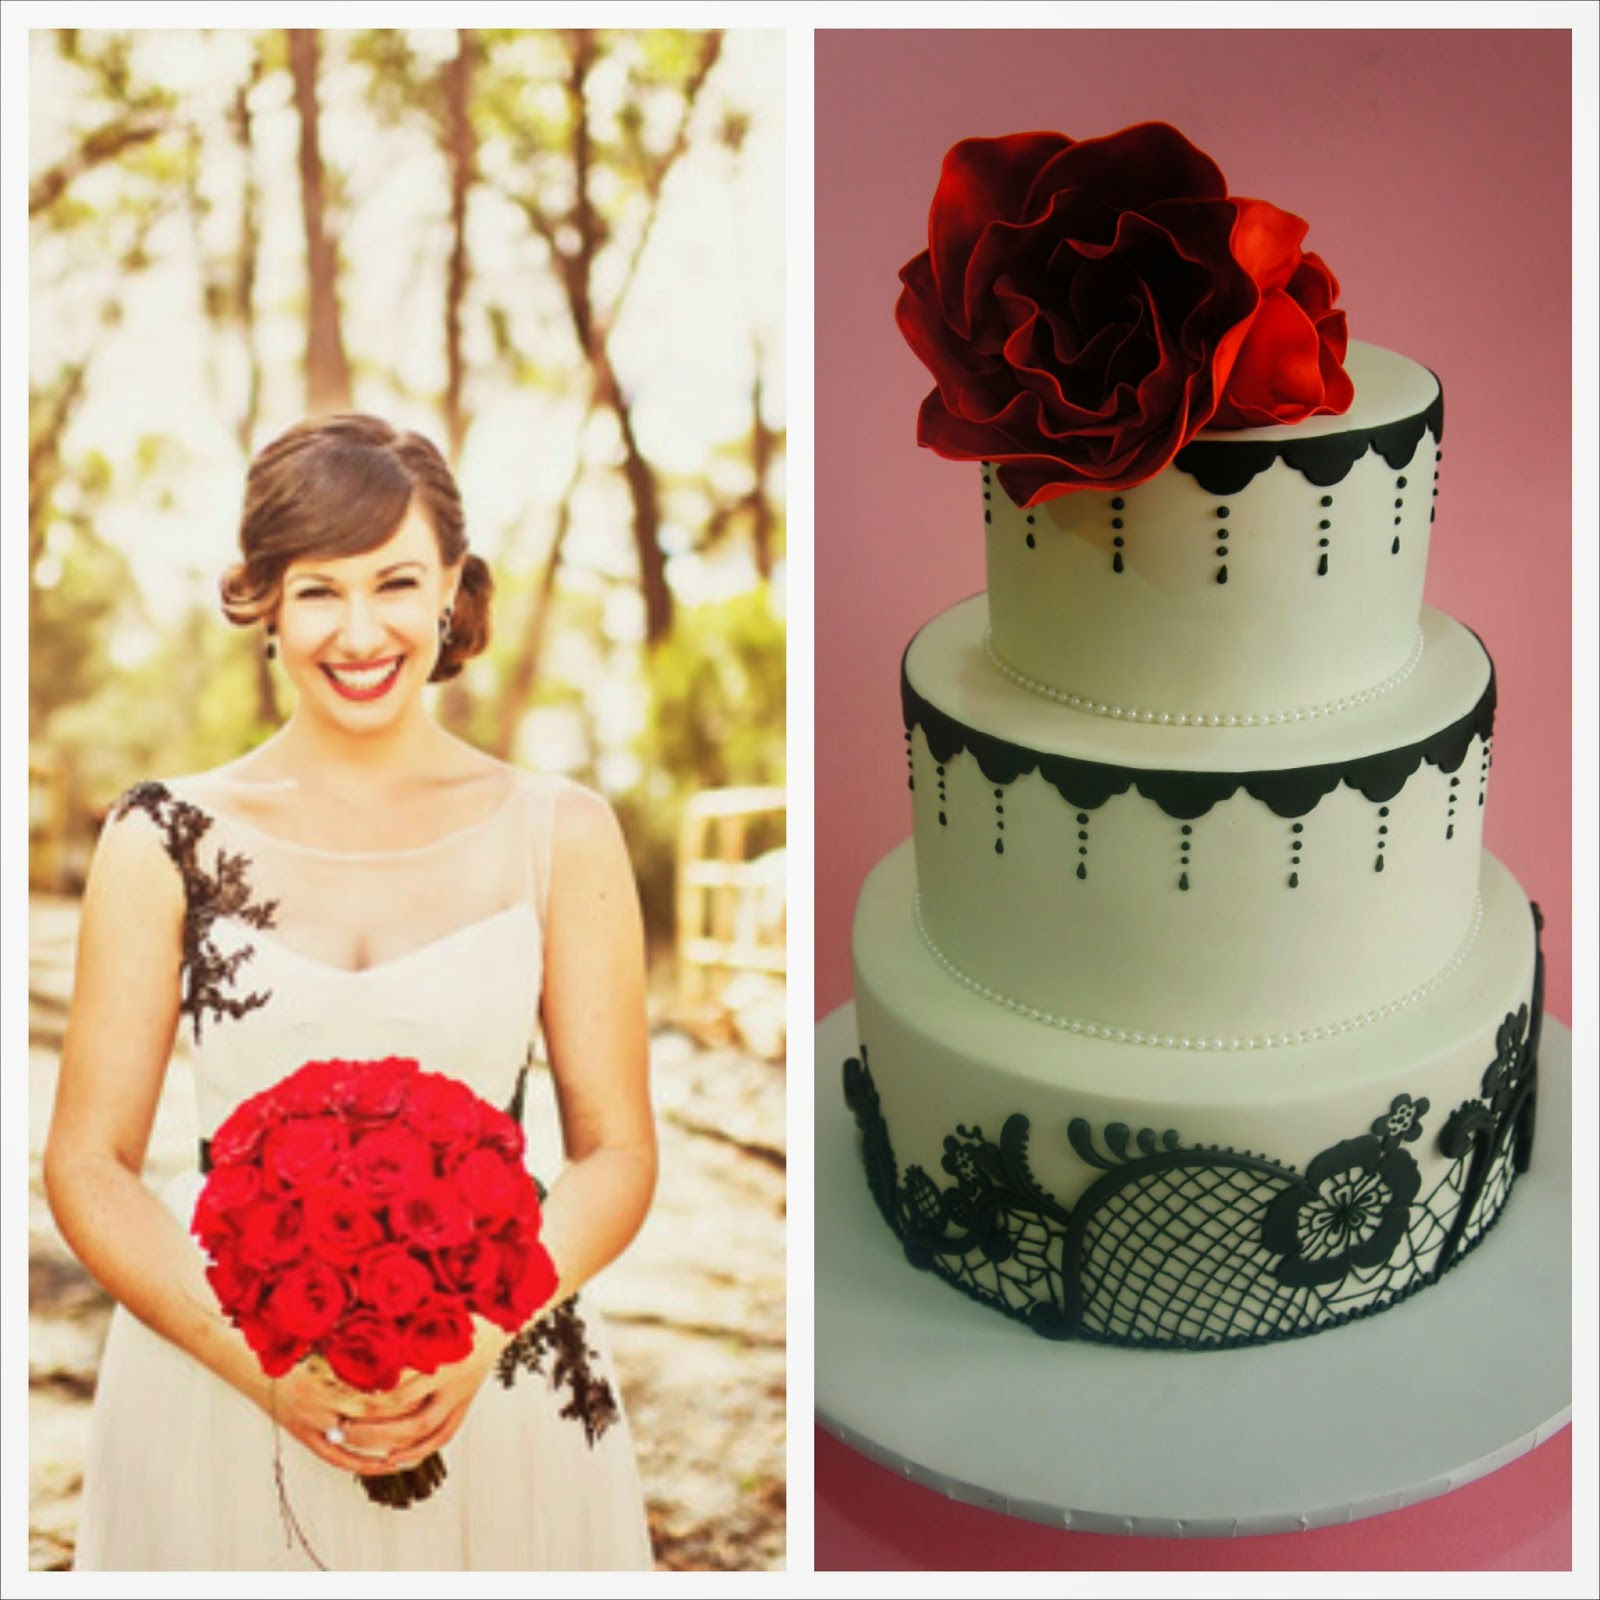 Why Do The Bride And Groom Cut The Wedding Cake